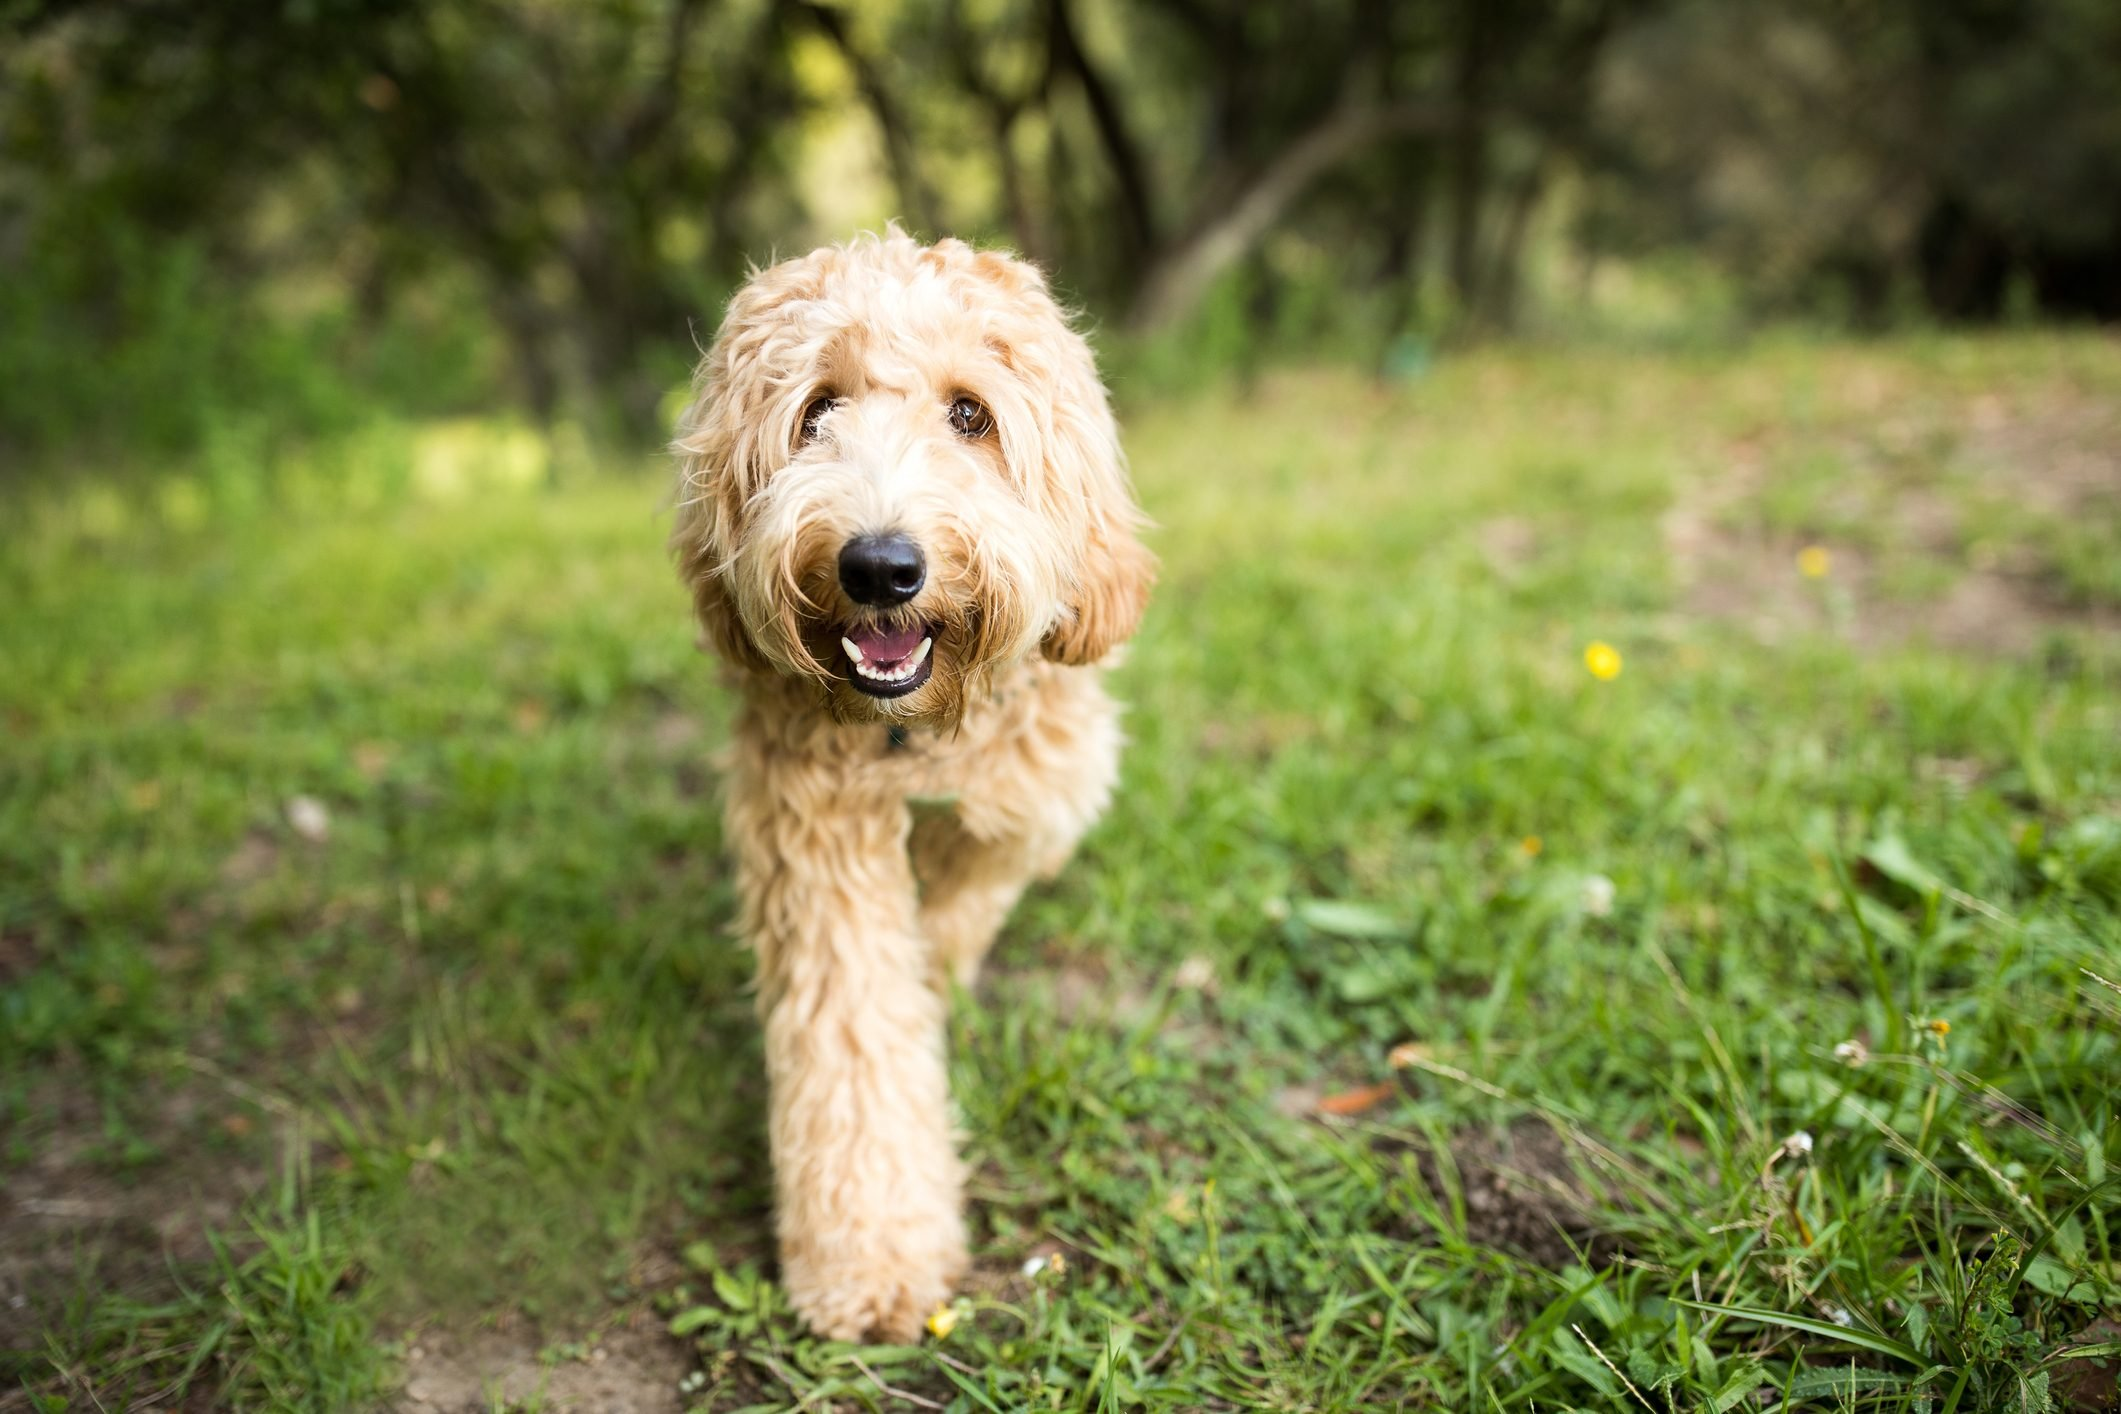 Happy Labradoodle Dog Walking Outdoors